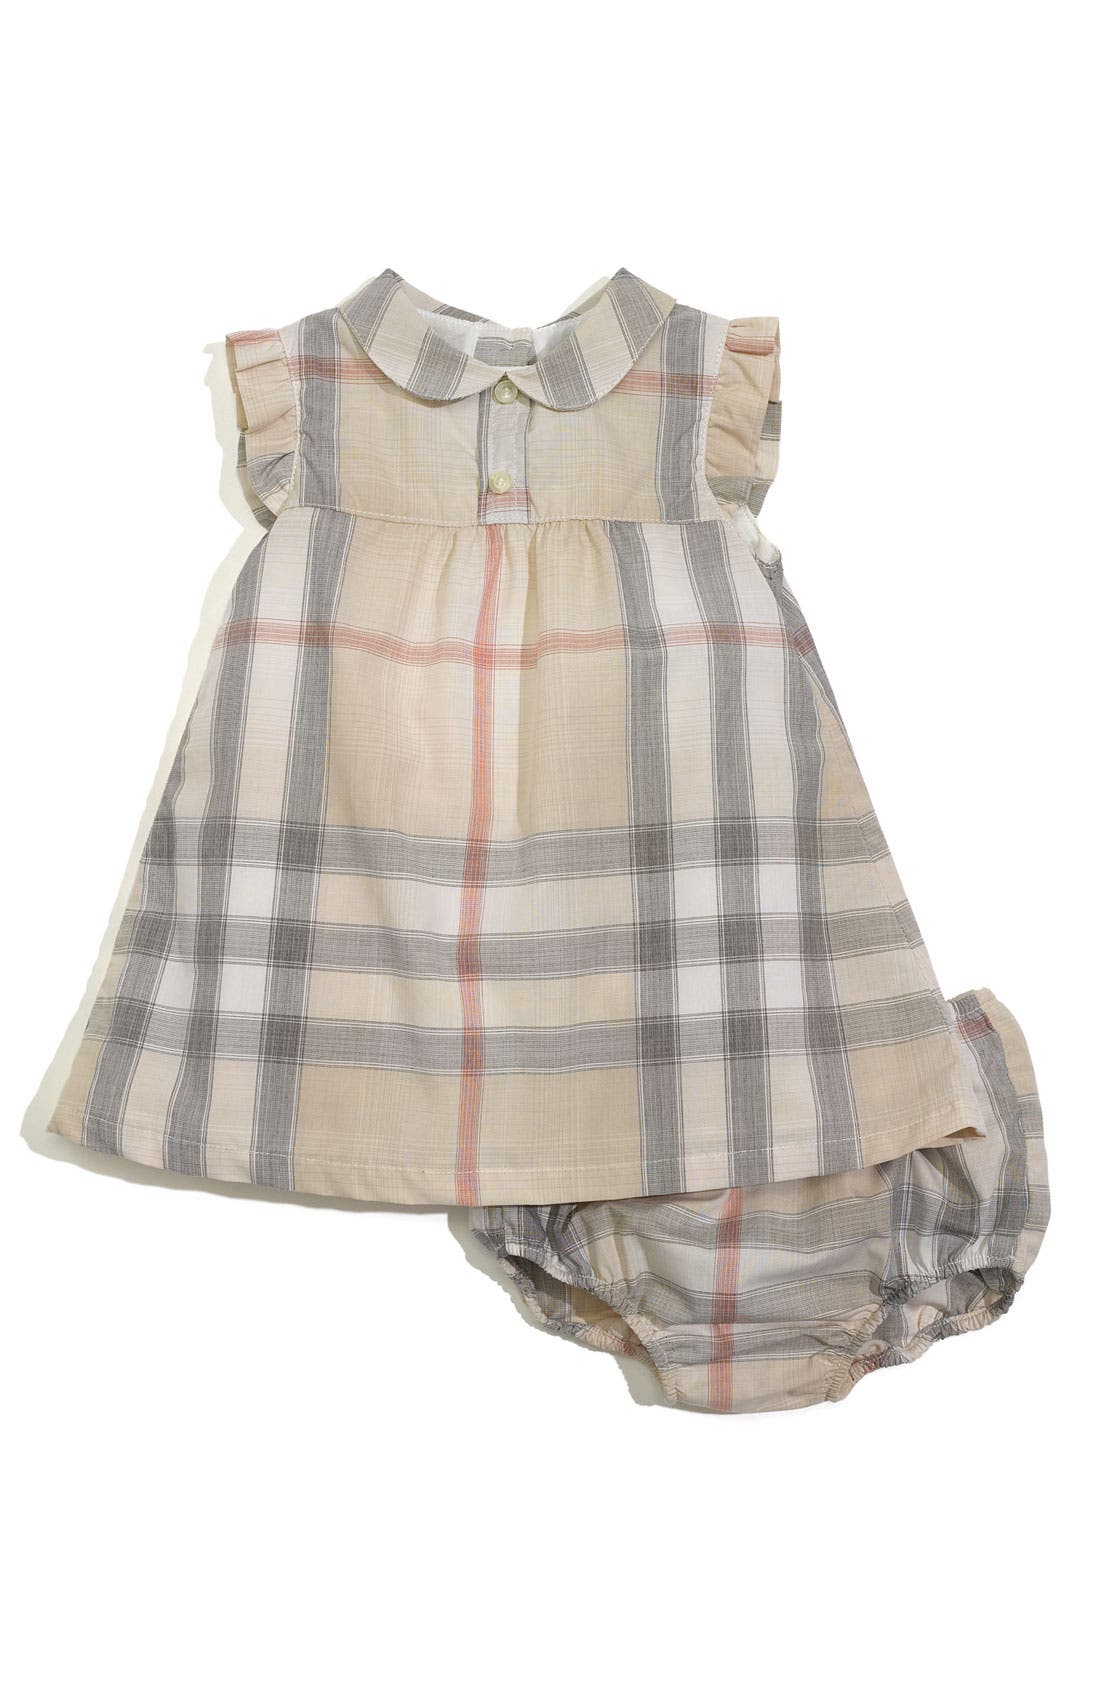 Alternate Image 1 Selected - Burberry Sleeveless Dress & Diaper Cover (Infant)